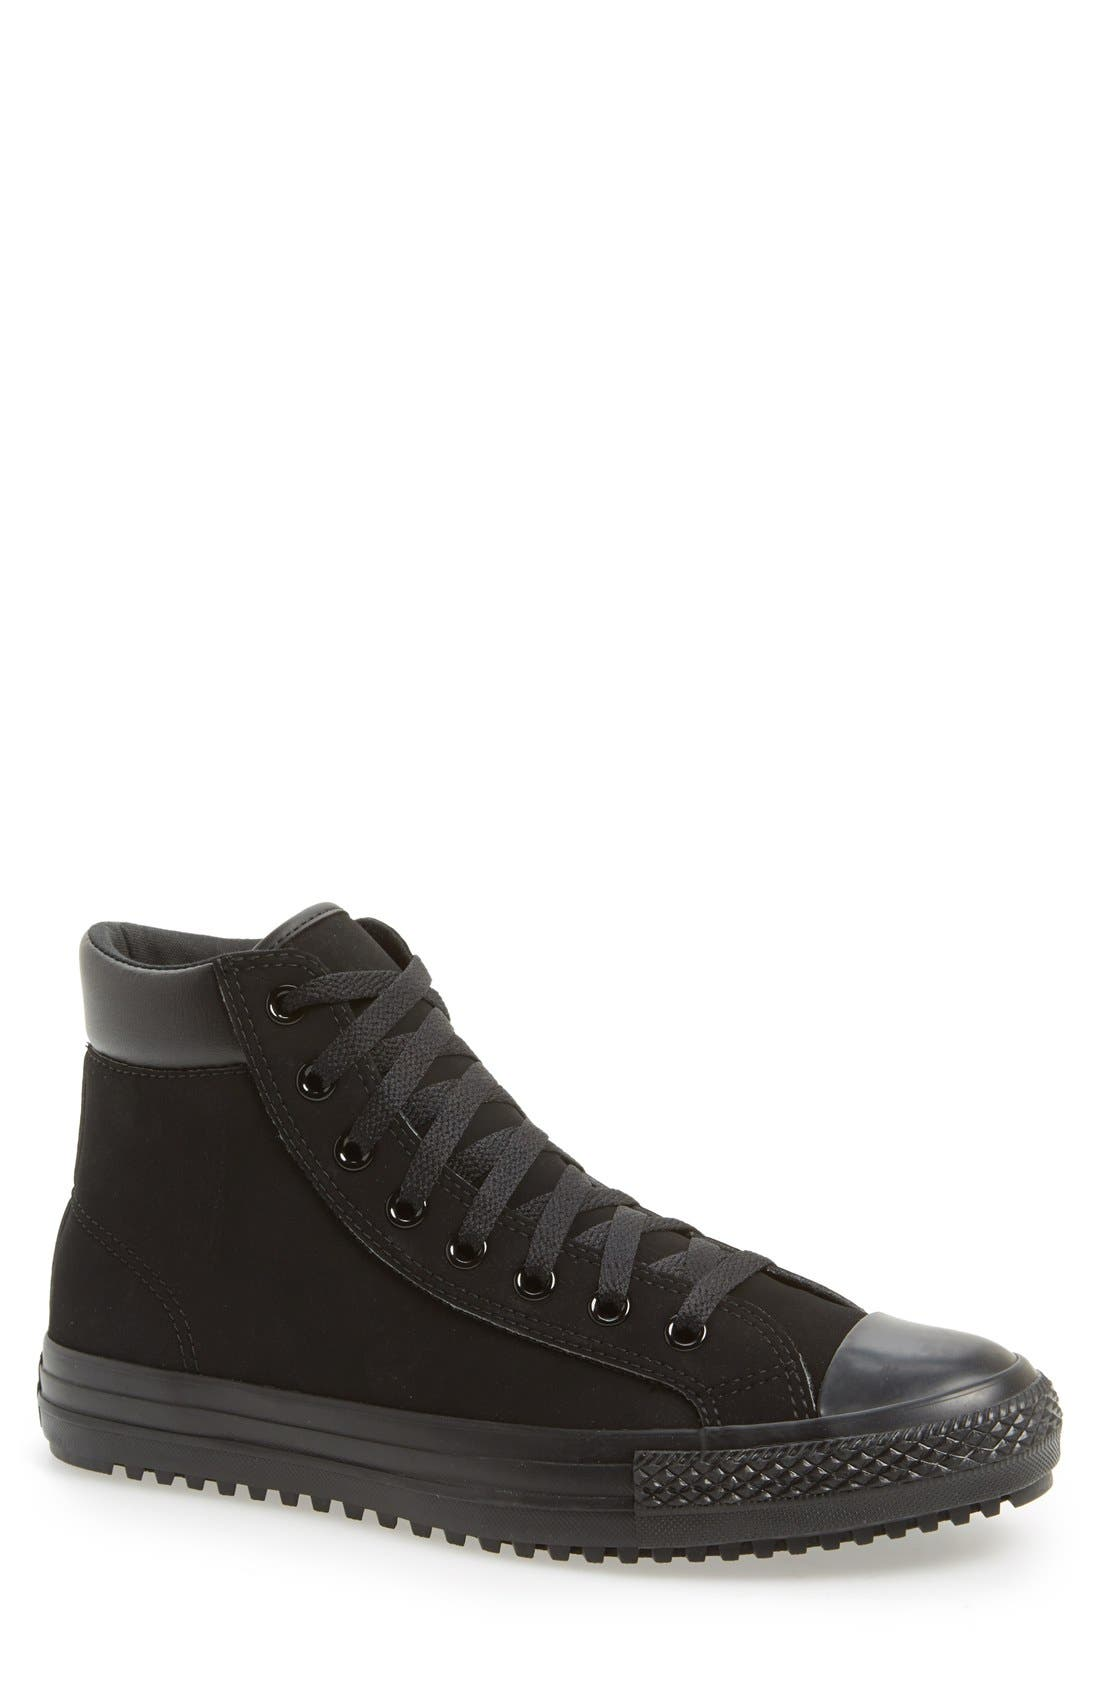 CONVERSE Chuck Taylor<sup>®</sup> All Star<sup>®</sup> Sneaker, Main, color, 001